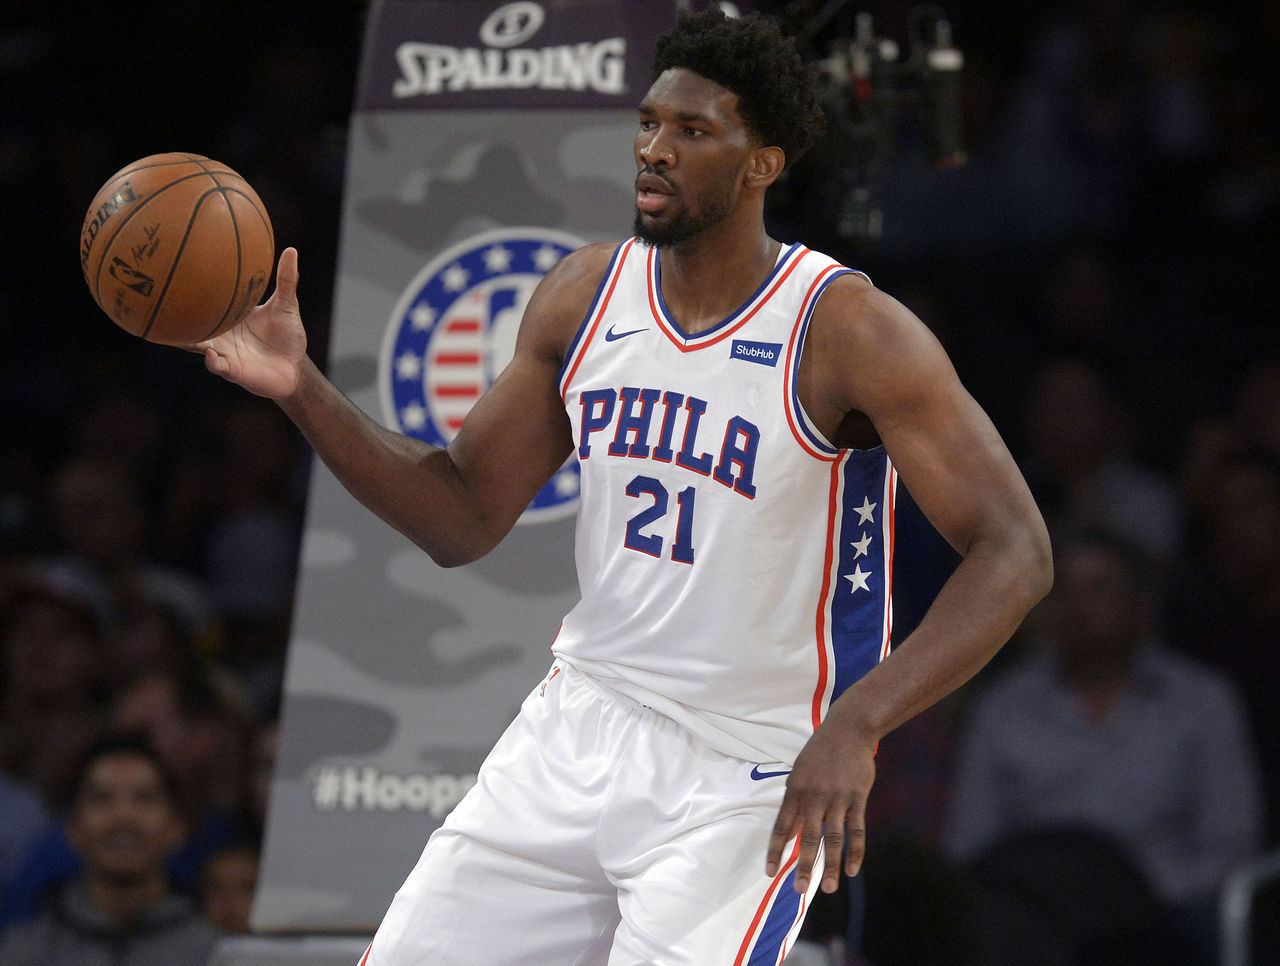 Cropped 2017 11 16t041119z 2130684435 nocid rtrmadp 3 nba philadelphia 76ers at los angeles lakers